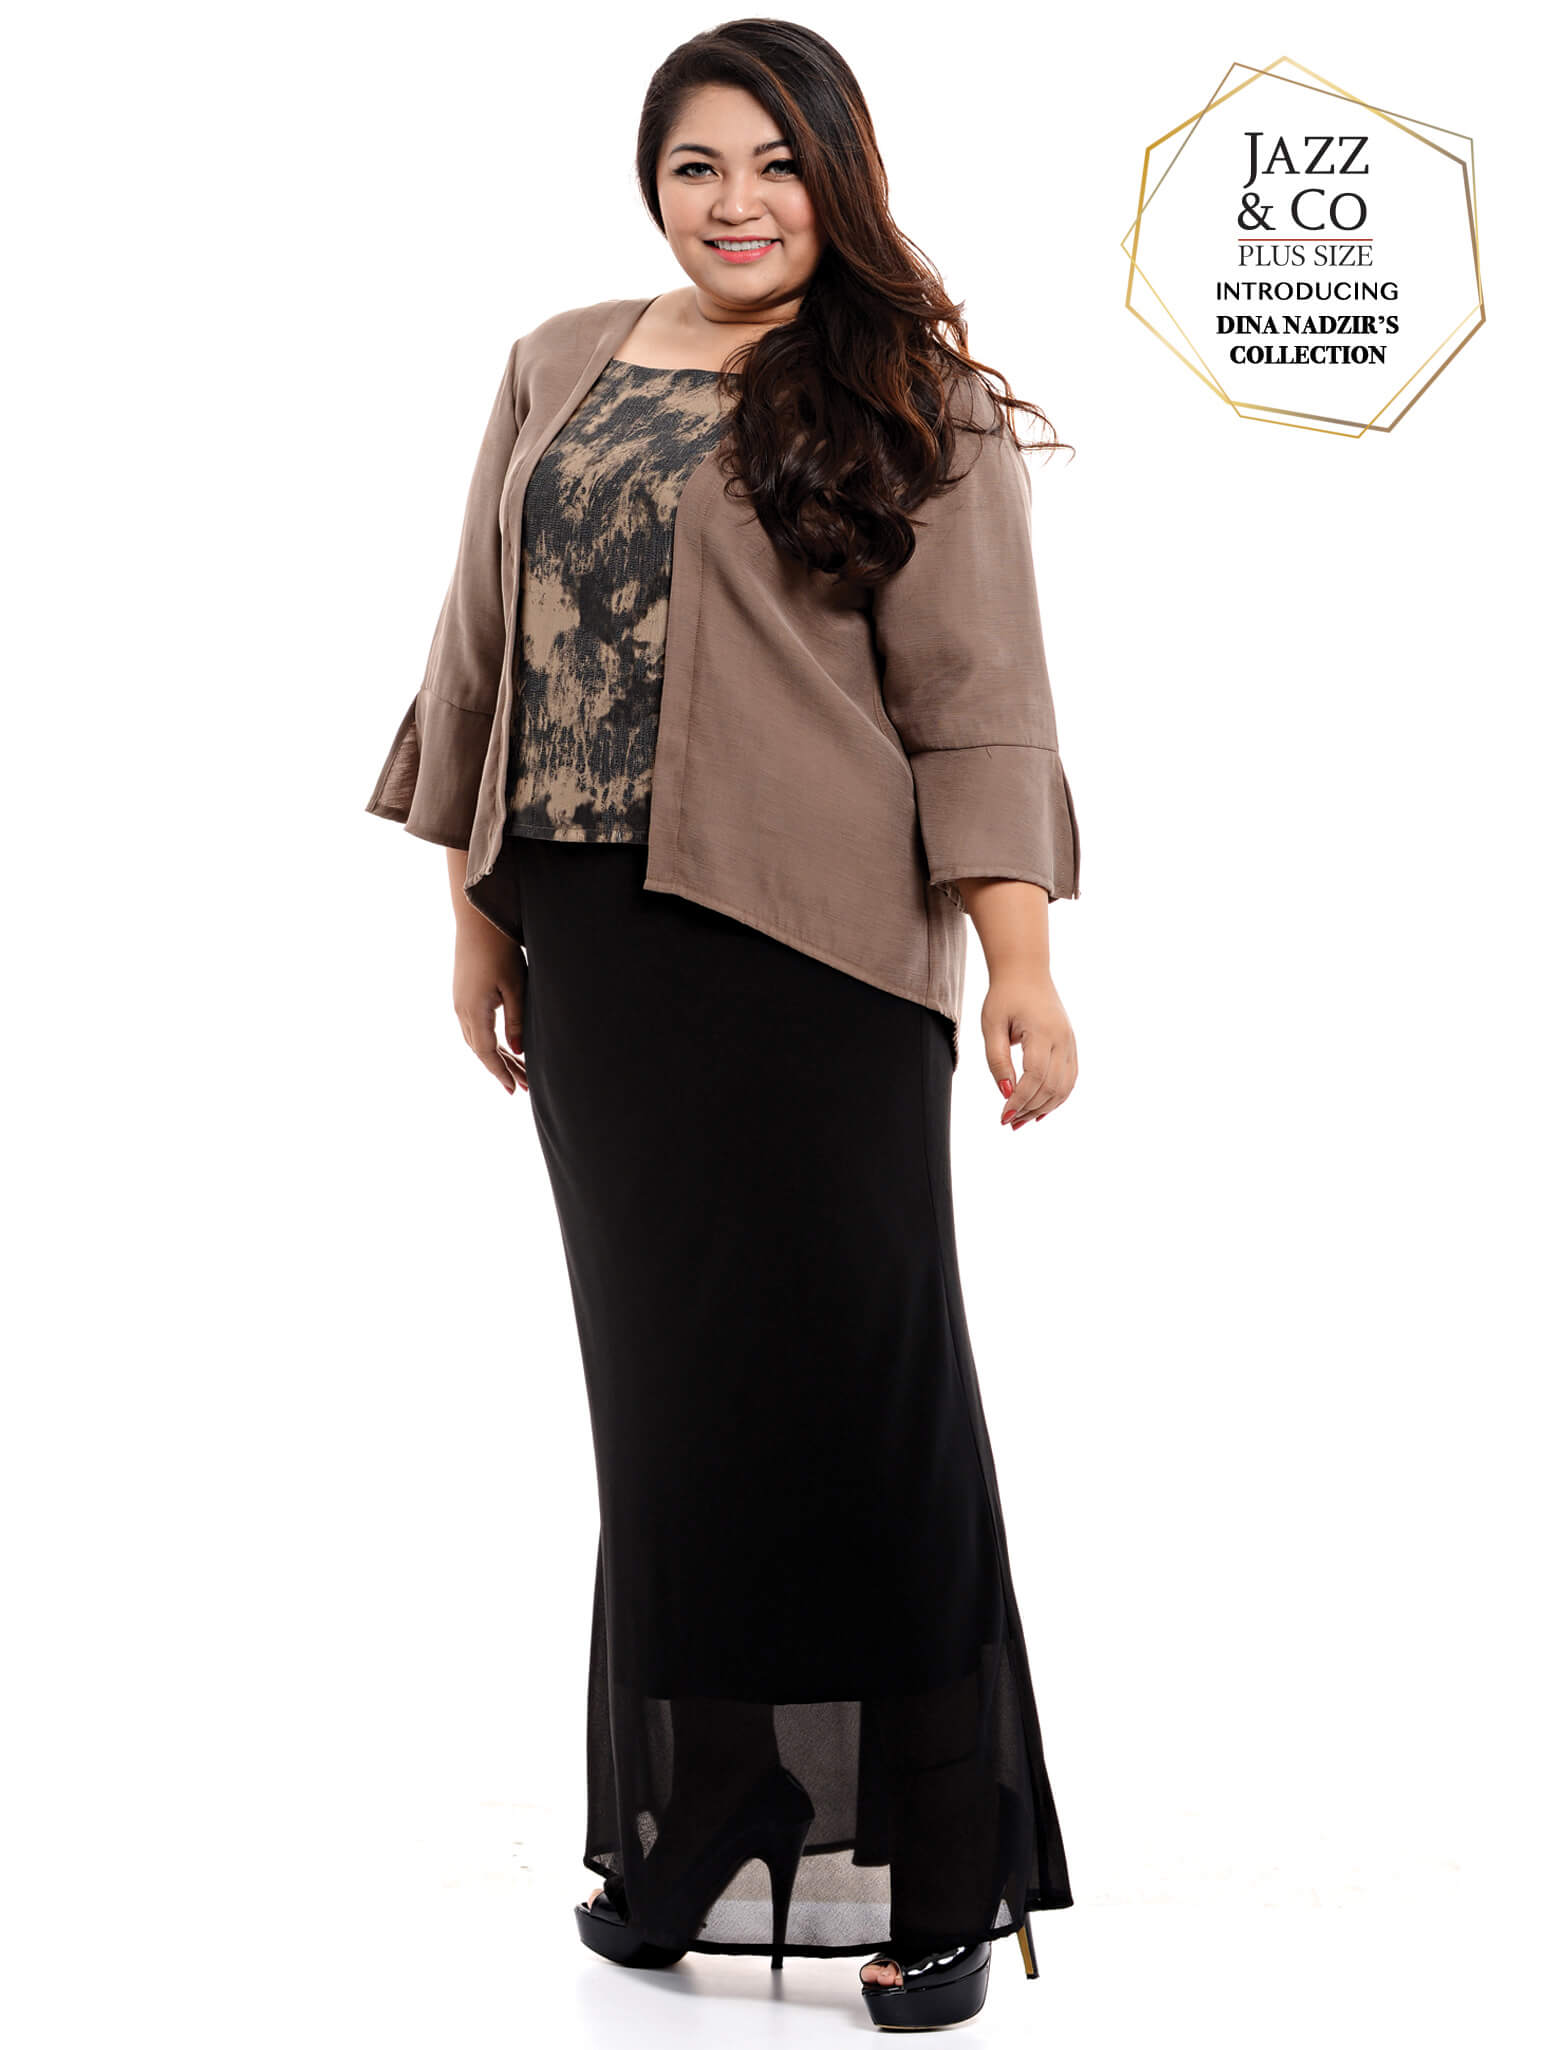 Jazz & Co Women Plus Size 3/4 sleeve kurung top in Dark Brown